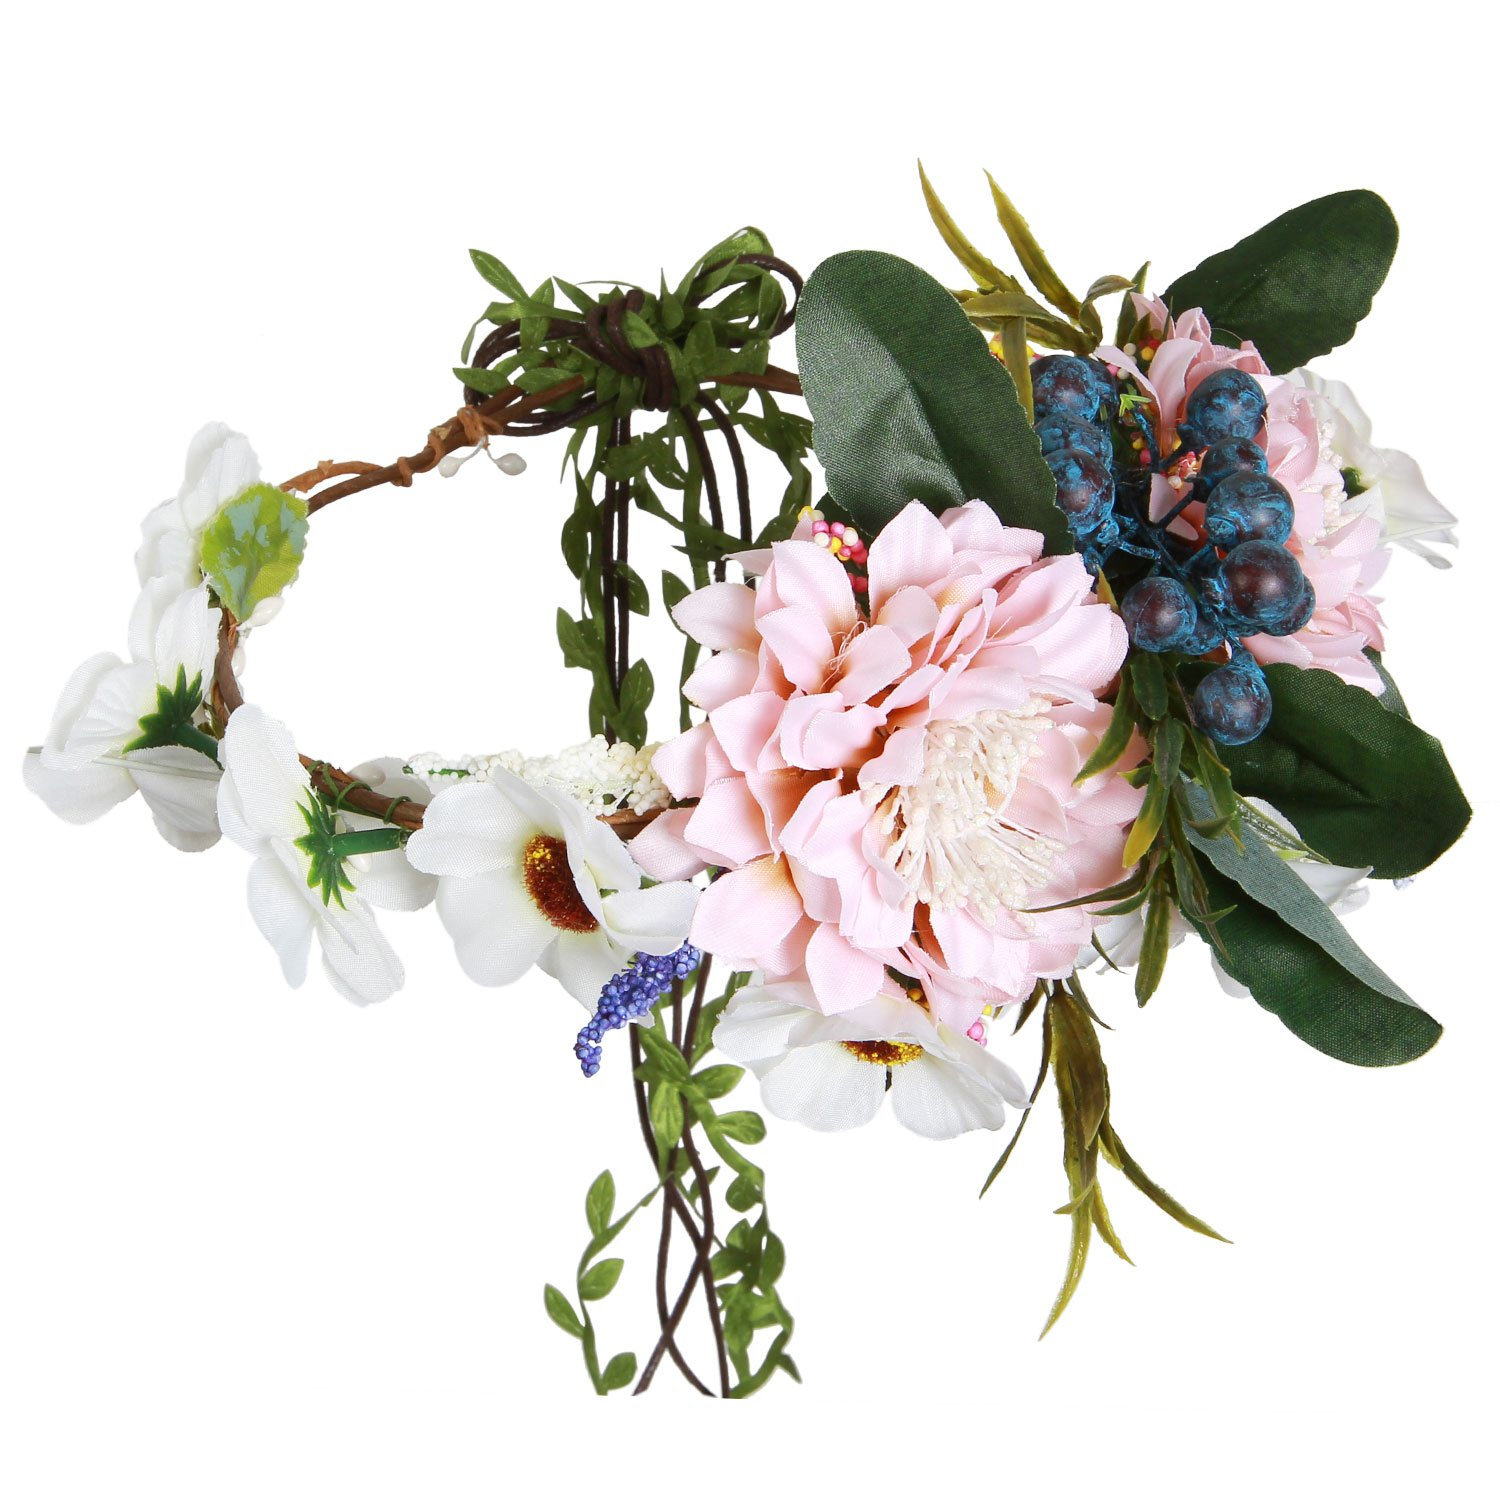 Valdler Aesthete Chrysanthemum Flower Crown Headband Halo for Wedding Festivals Light Pink